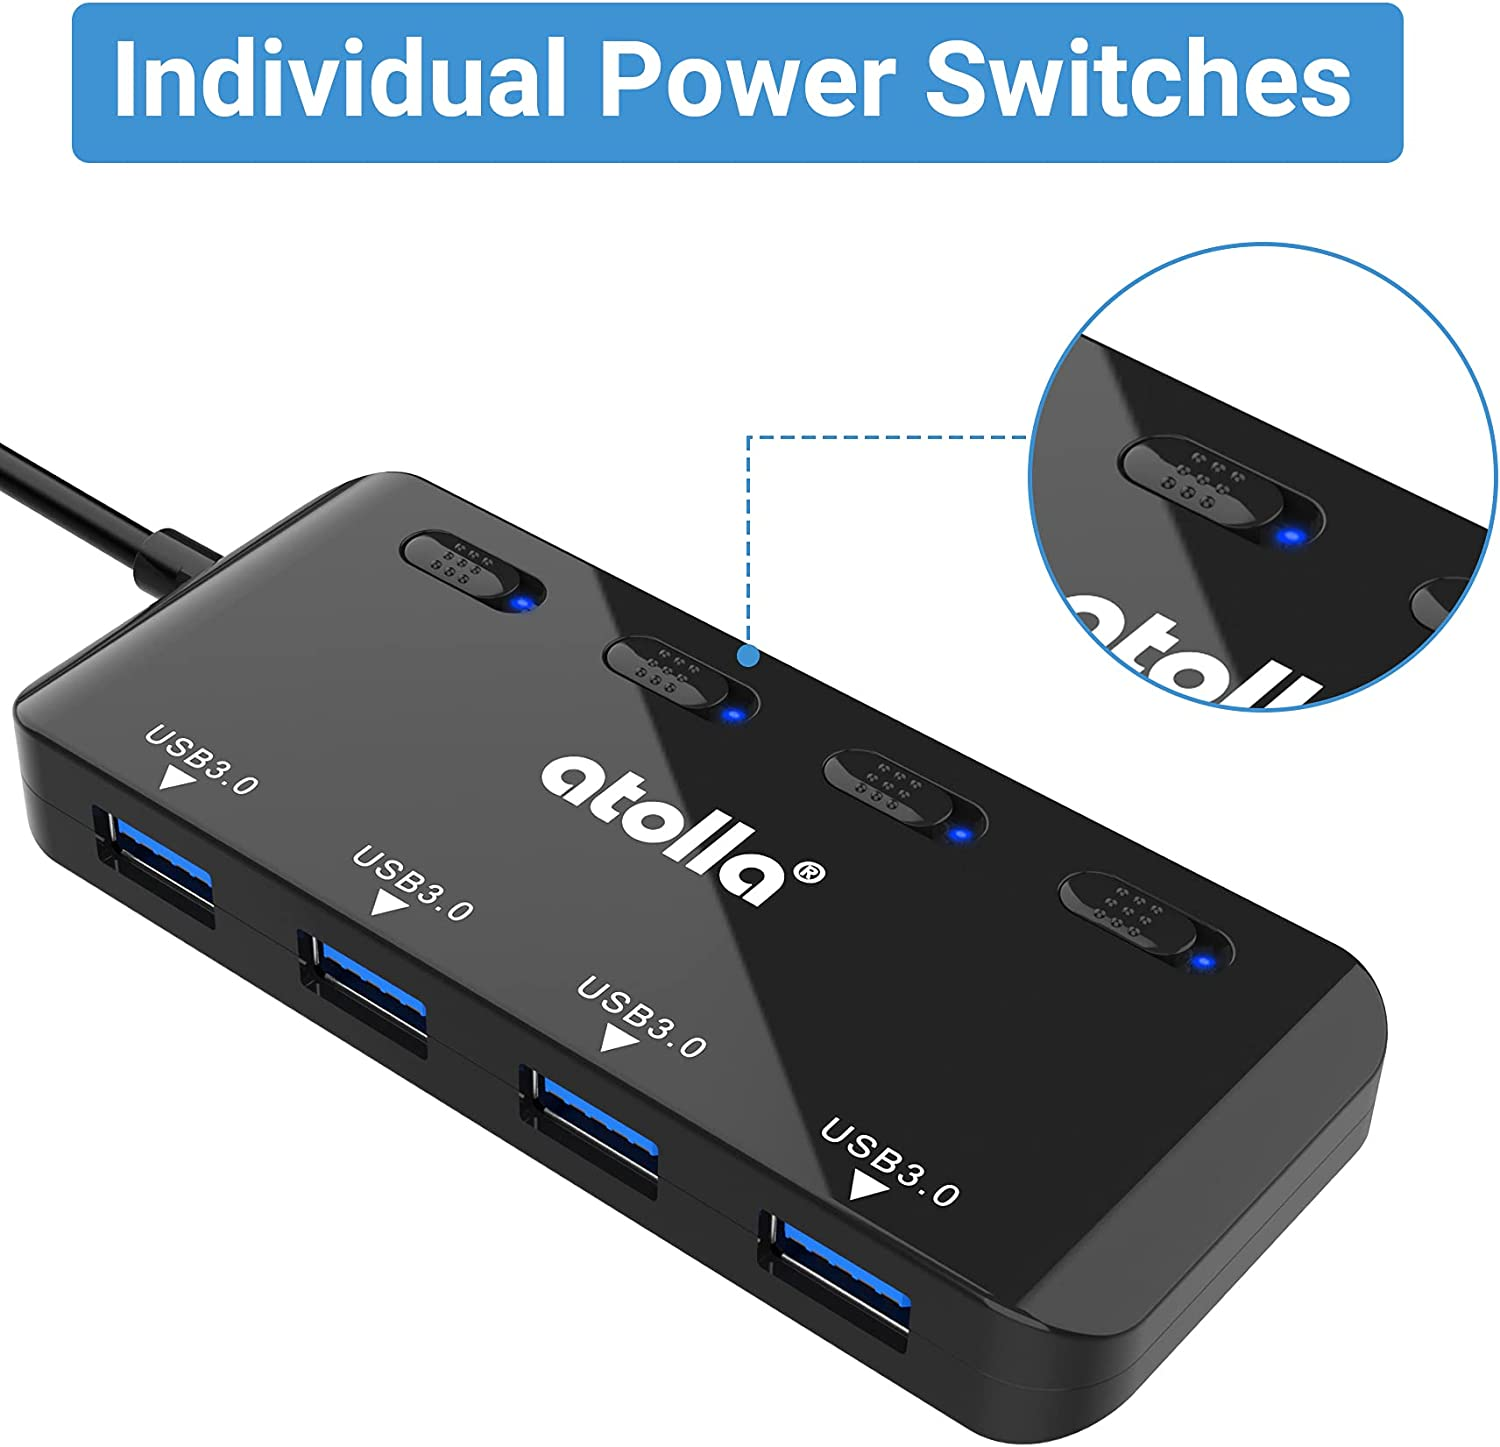 atolla USB Hub, 4-Port USB 3.0 Hub with Individual LED Power Switches & 2 Ft Cable, Ultra Slim USB Splitter for PC, Mac Pro/Mini, iMac, MacBook Air, Surface Pro, USB Flash Drives, Mobile HDD